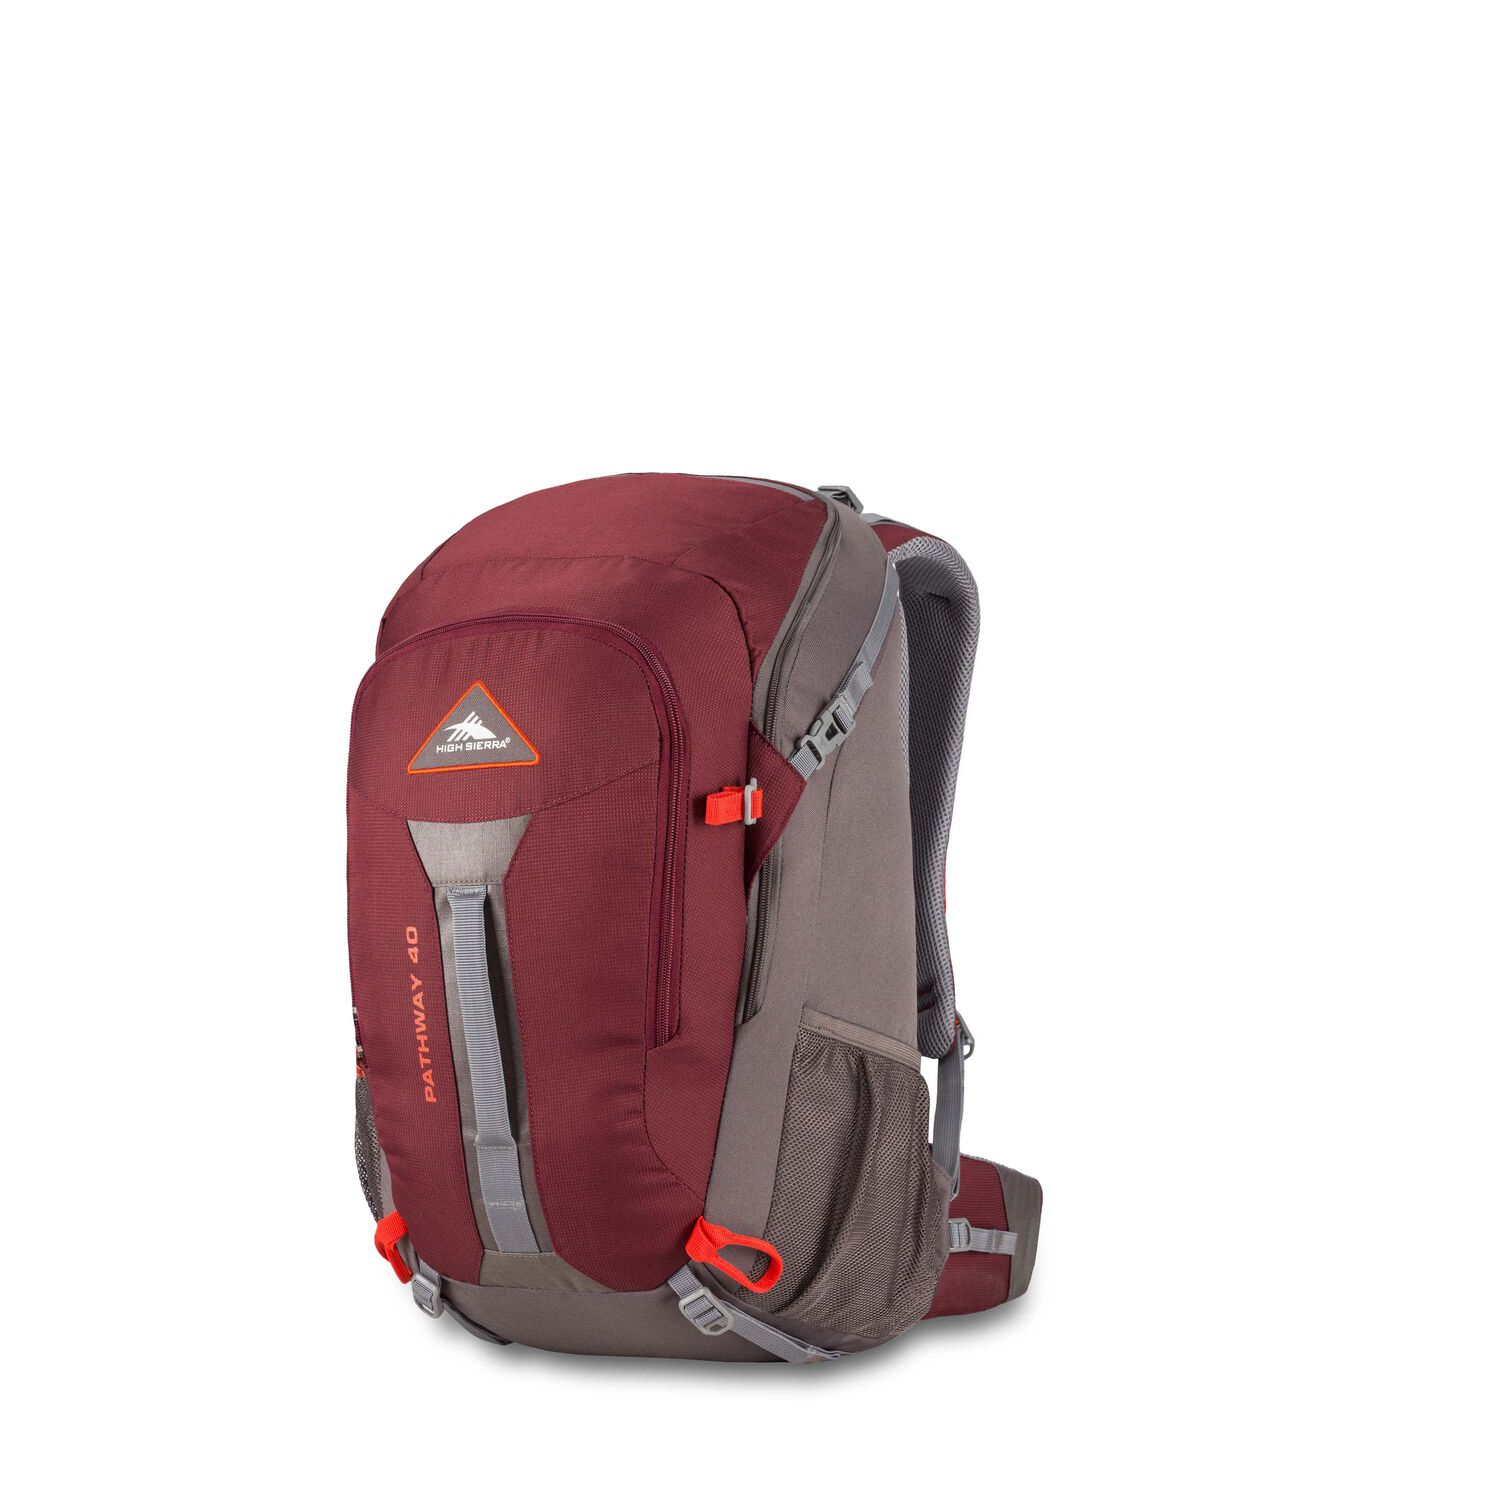 59bd5fb1df1 High Sierra Pathway 40L Pack in the color Cranberry/Slate/Redrock.